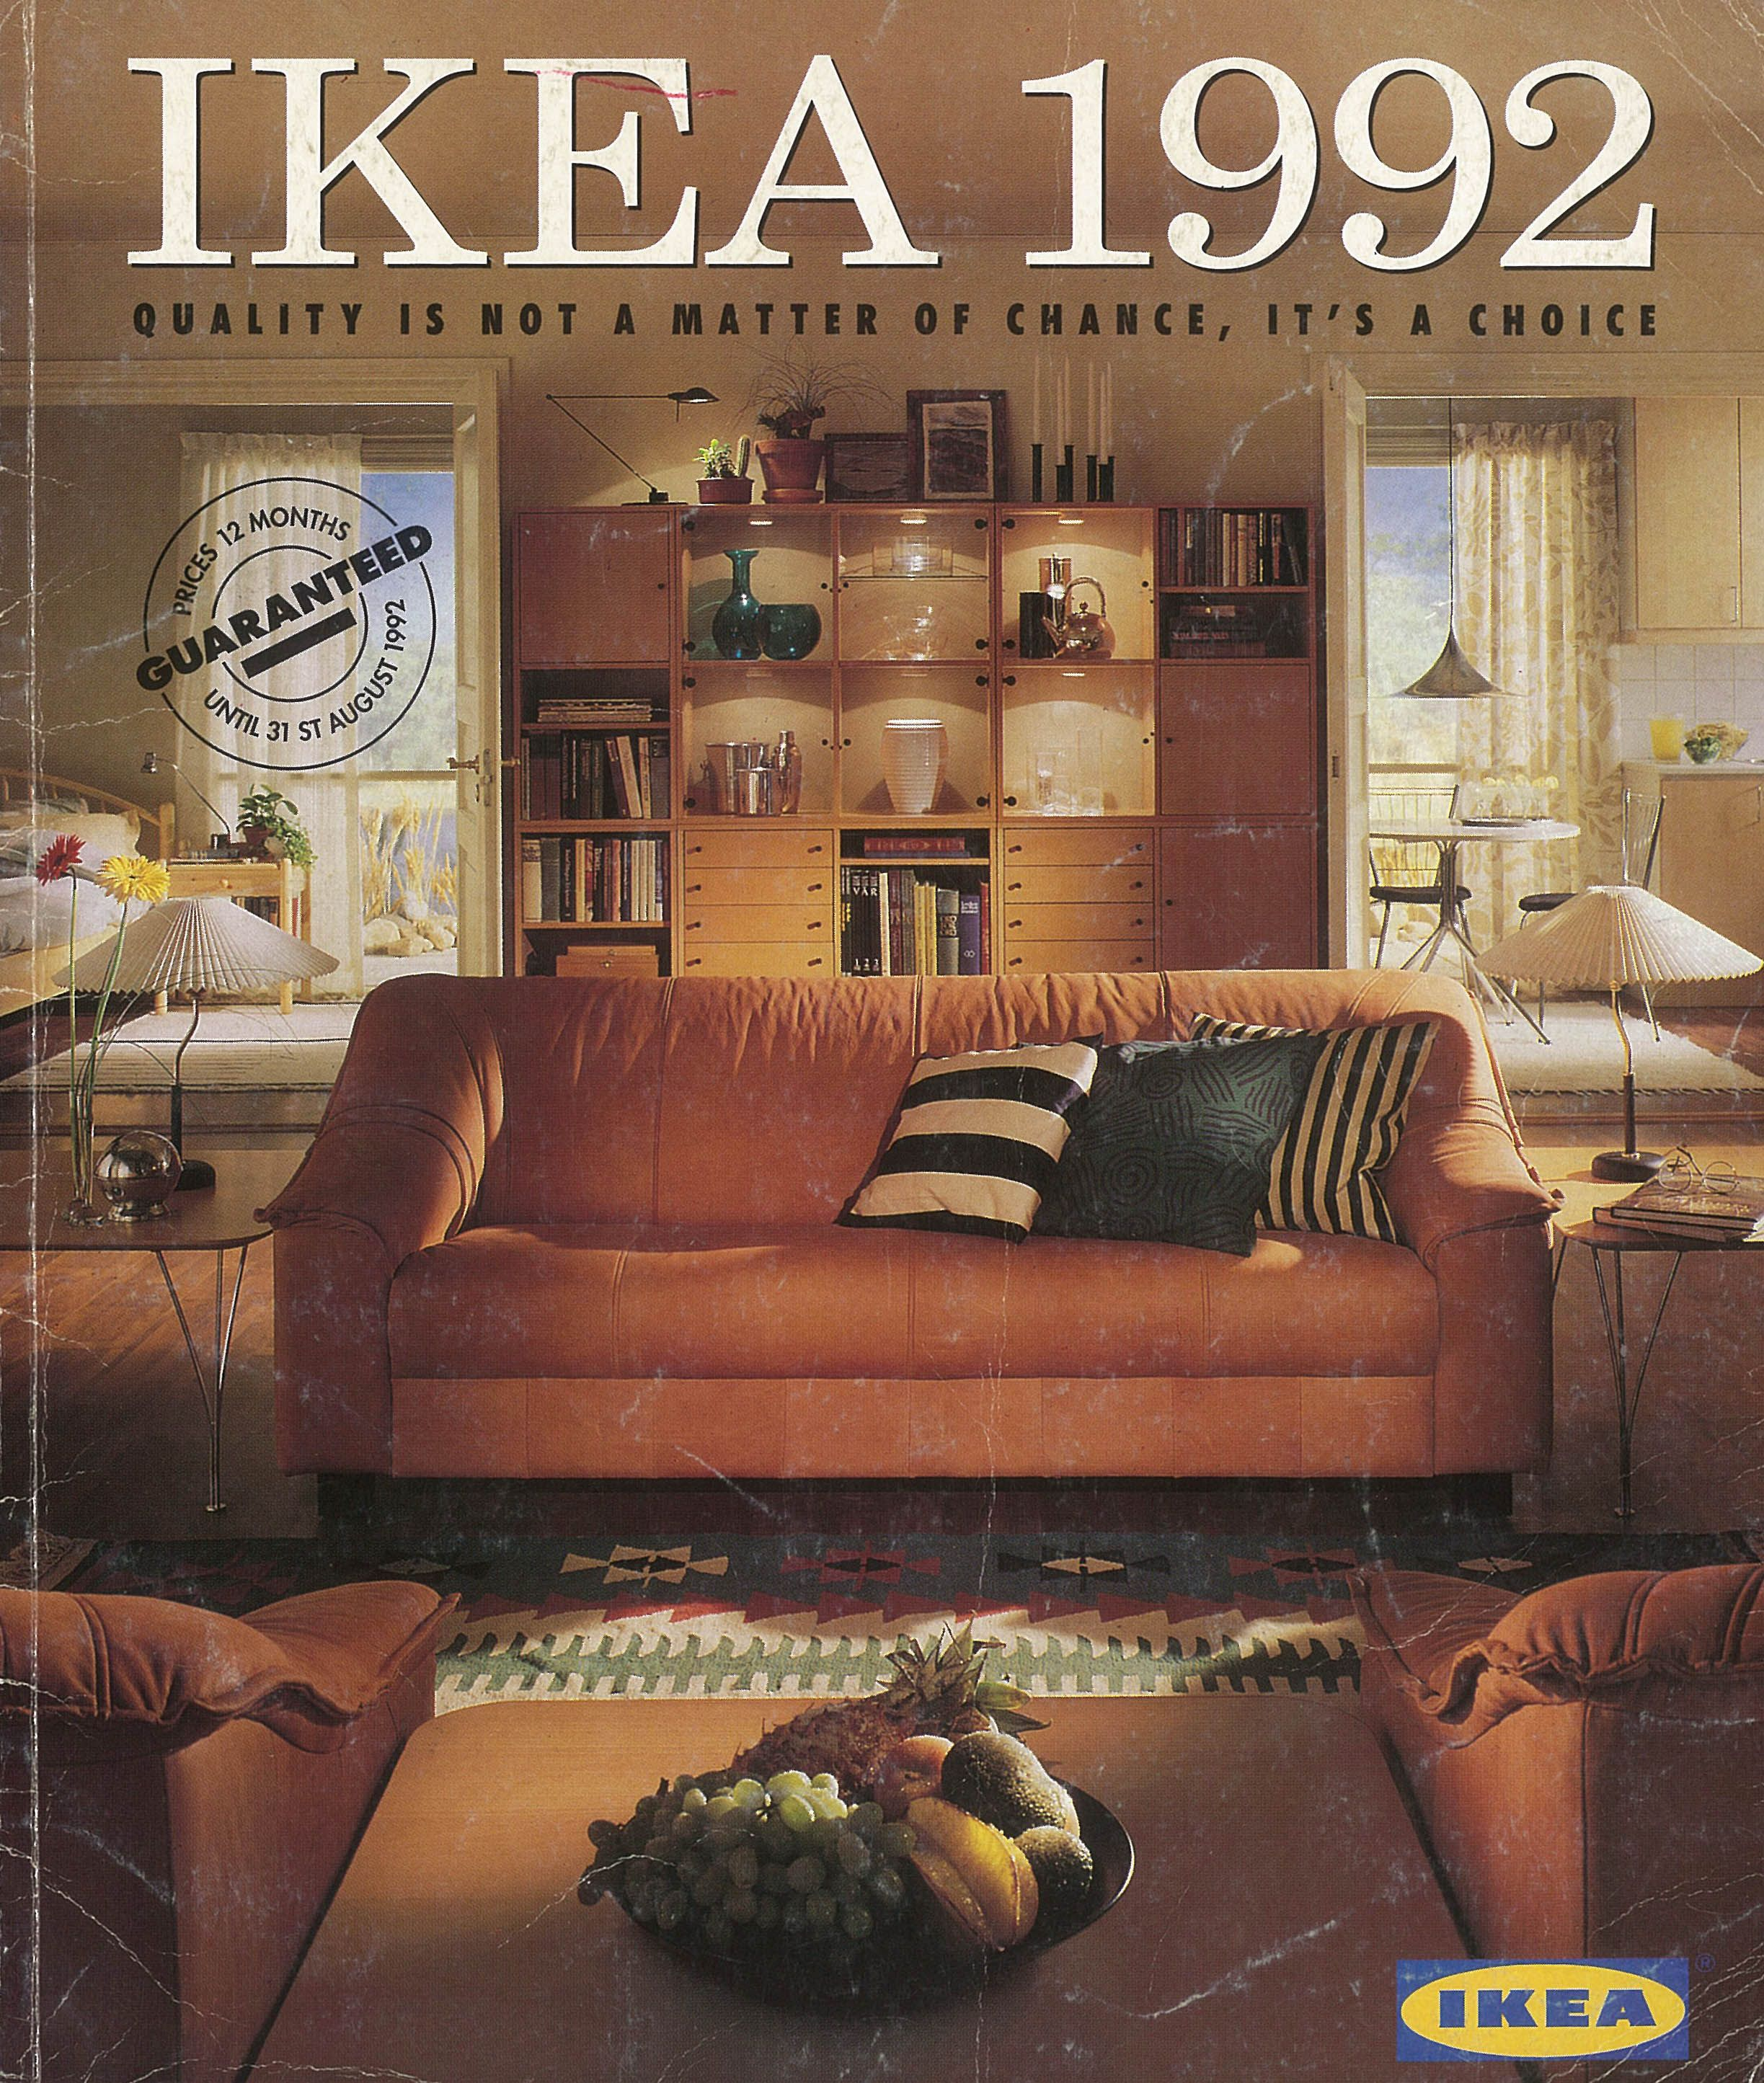 The 1992 IKEA Catalogue cover. The 1992 IKEA Catalogue cover    IKEA Catalogue Covers   Pinterest